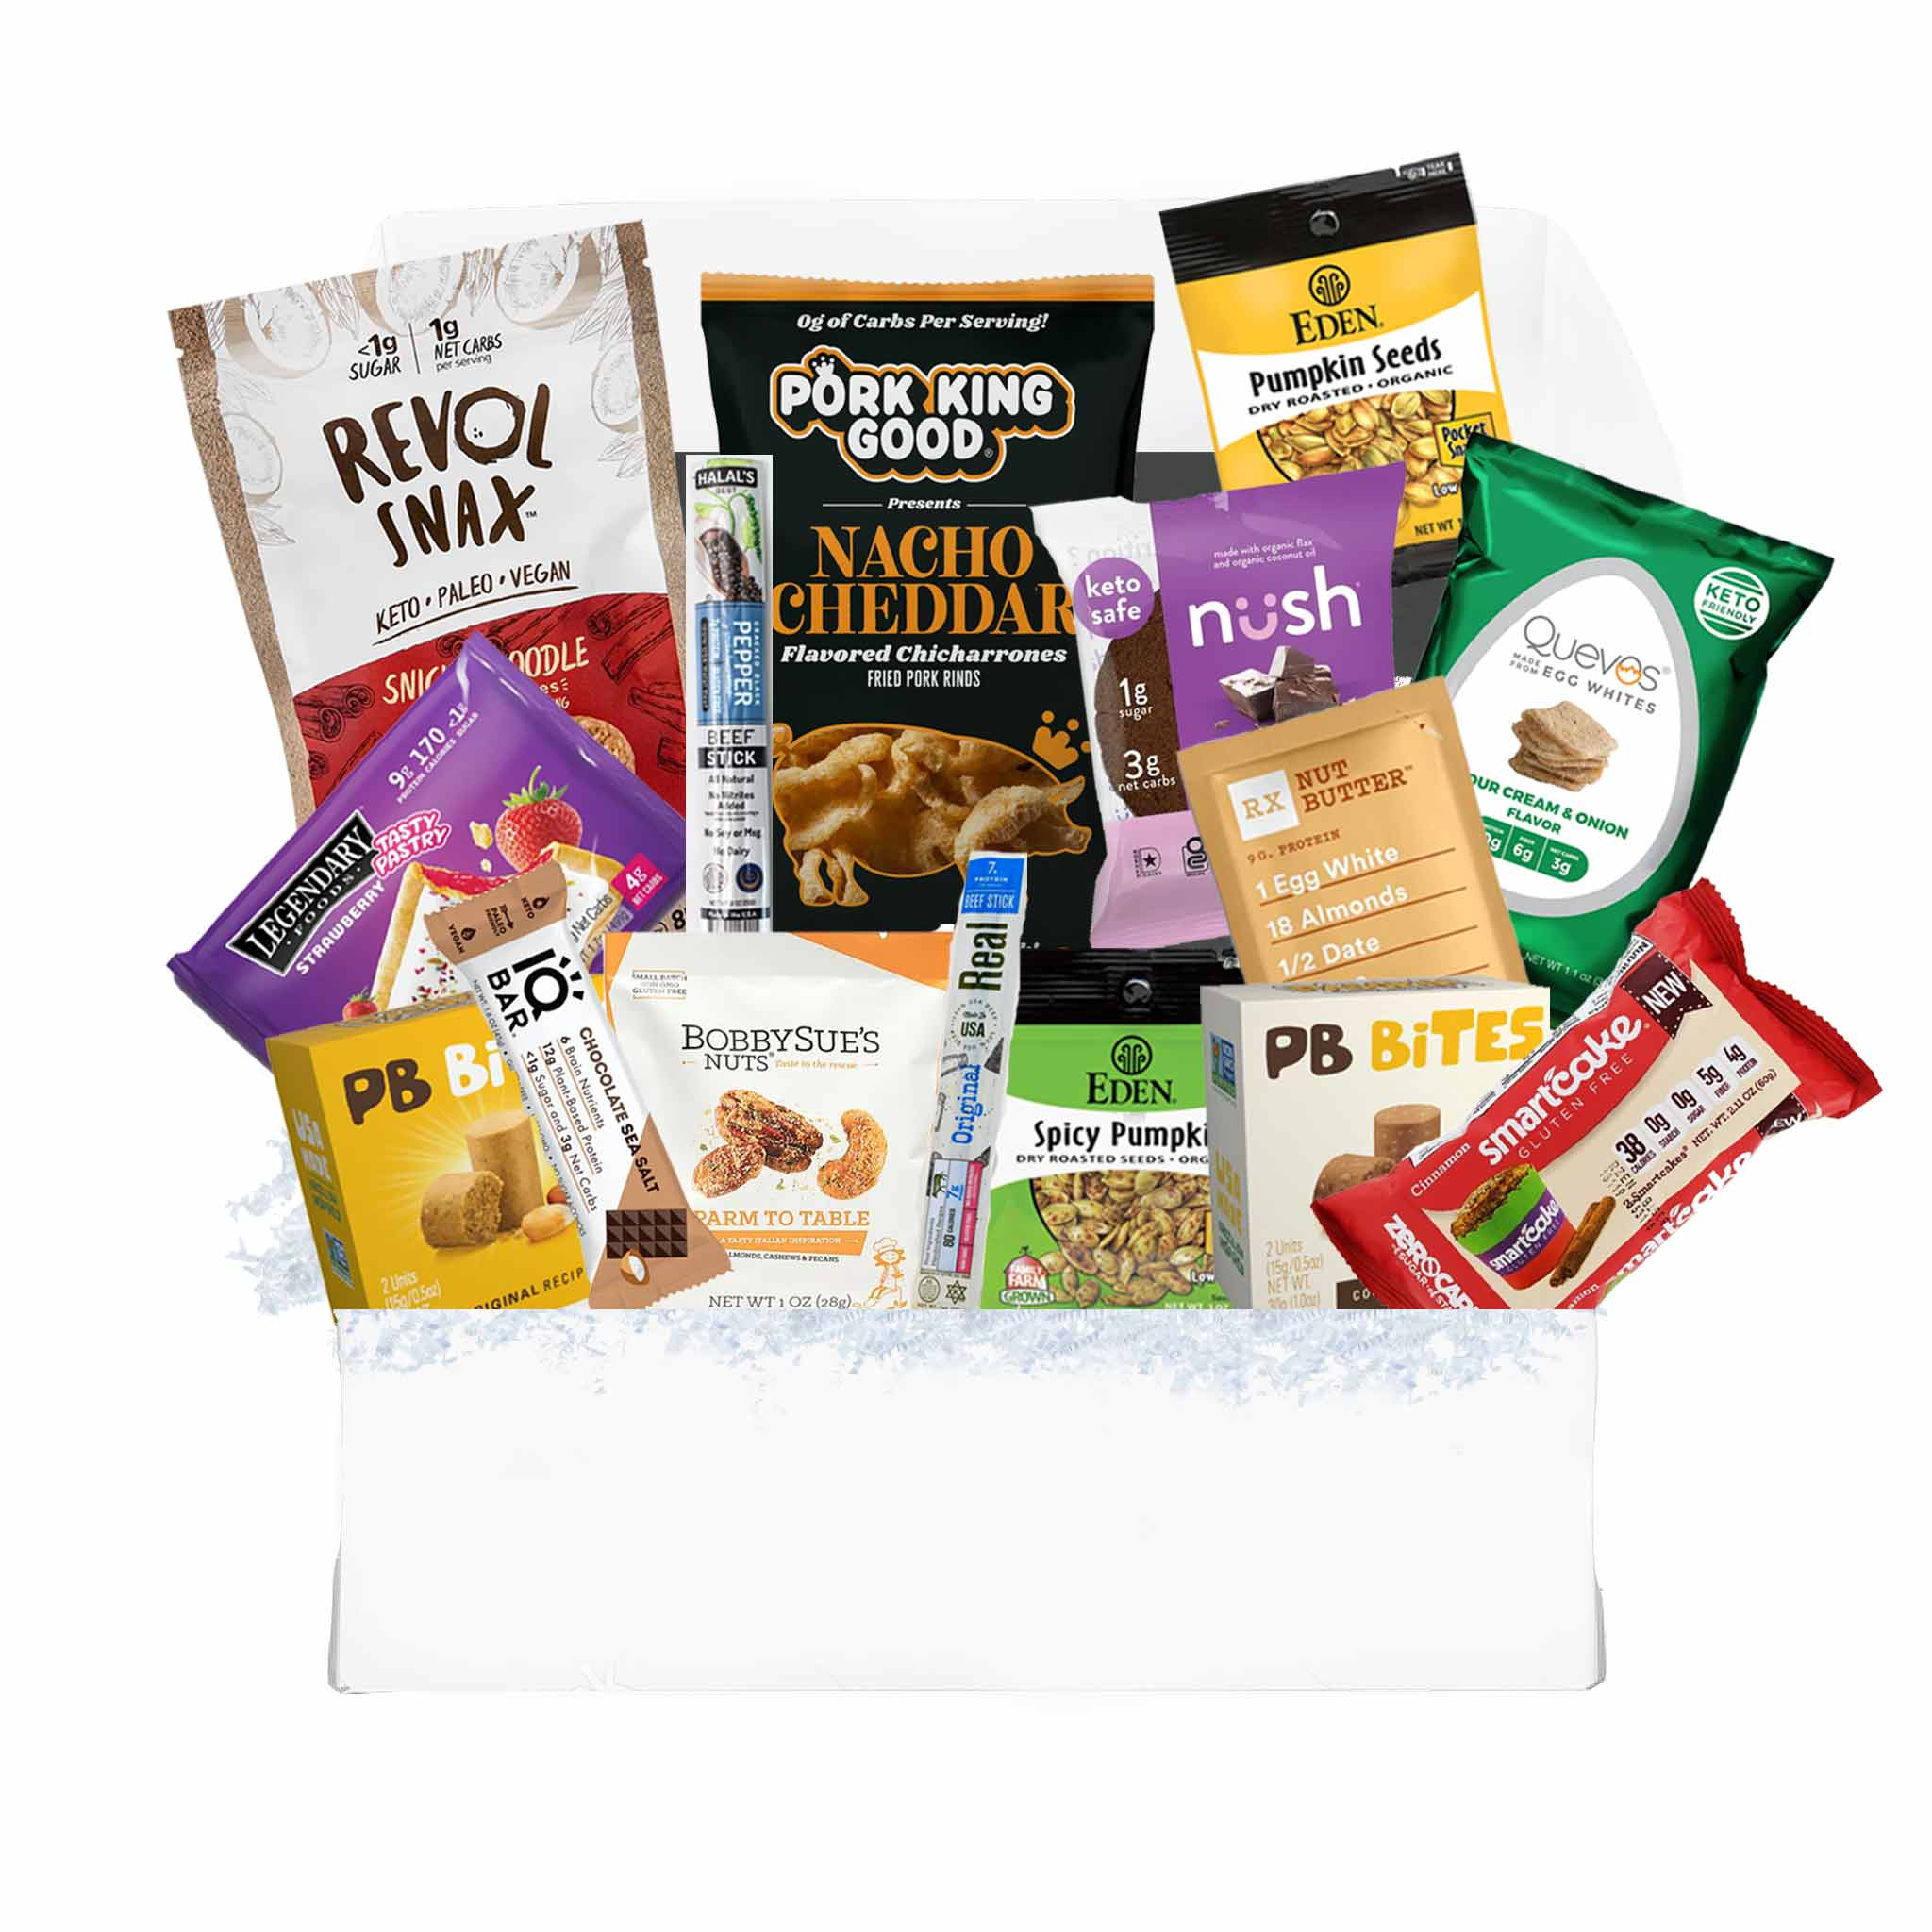 Keto / Low Carb Gift Box Care Package